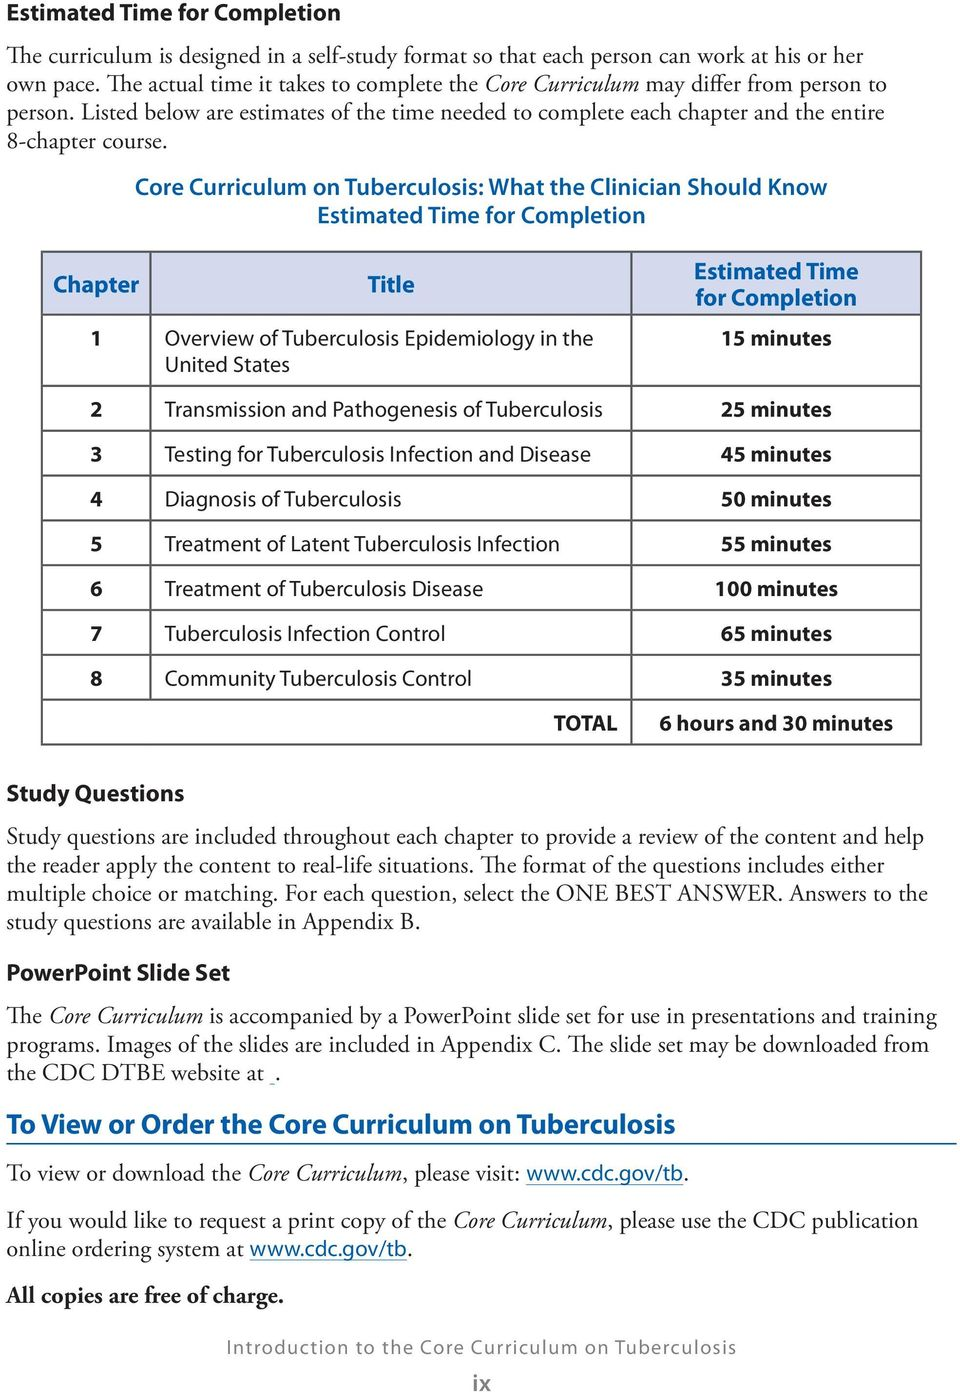 Core Curriculum on Tuberculosis: What the Clinician Should Know Estimated Time for Completion Chapter Title 1 Overview of Tuberculosis Epidemiology in the United States Estimated Time for Completion